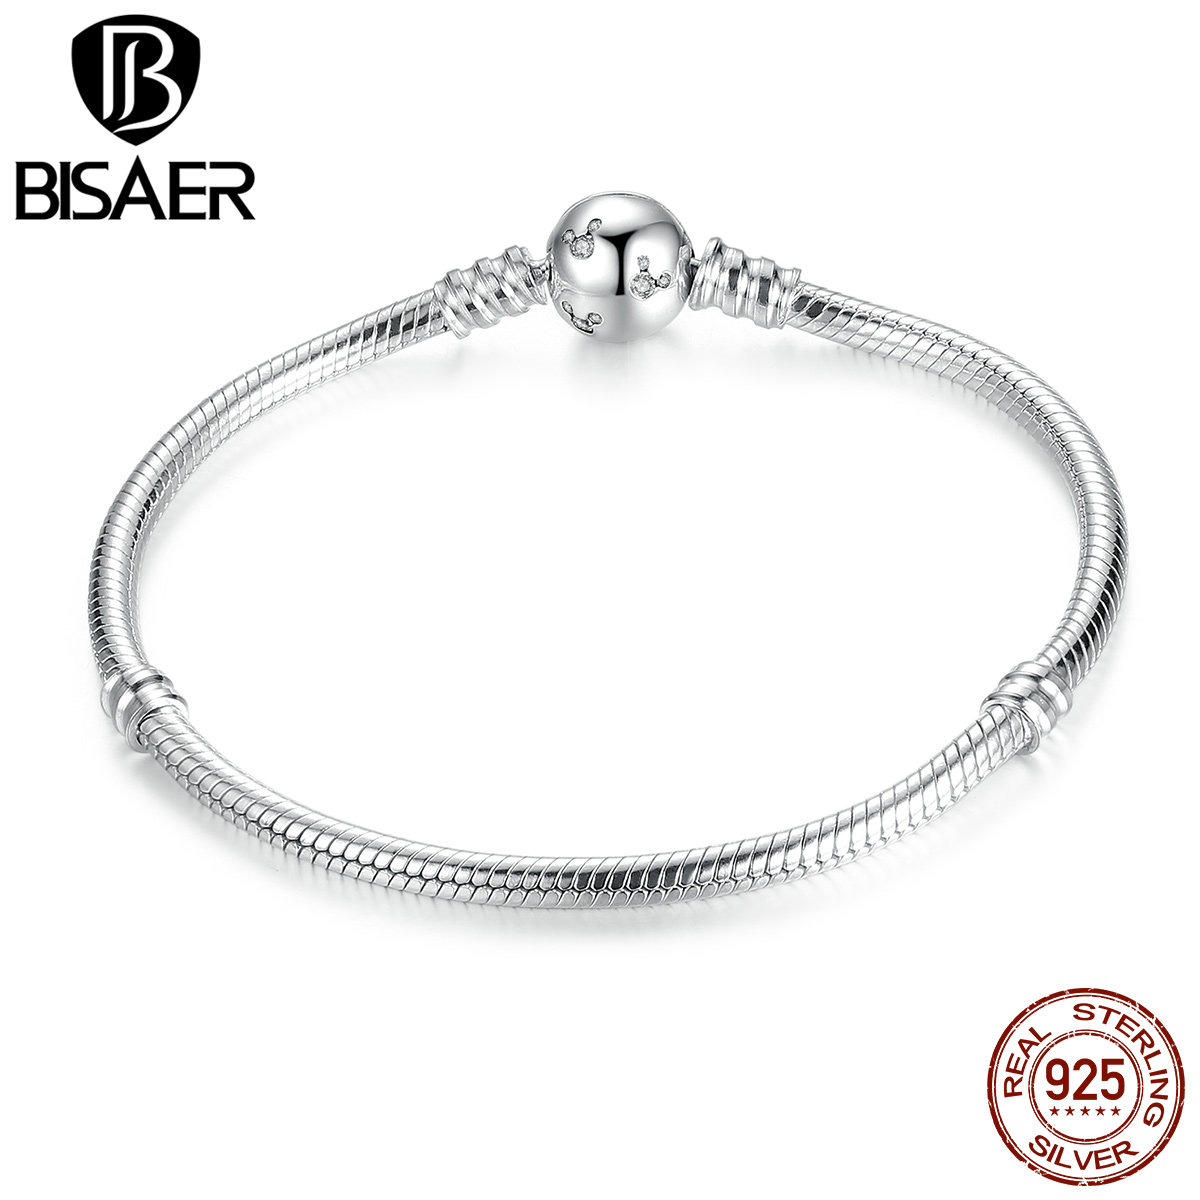 все цены на Authentic 925 Sterling Silver Snake Chain Dsny, Miky Basic DIY Charm Bracelet & Bangles for Women DIY Fine Silver Jewelry GOS912 онлайн